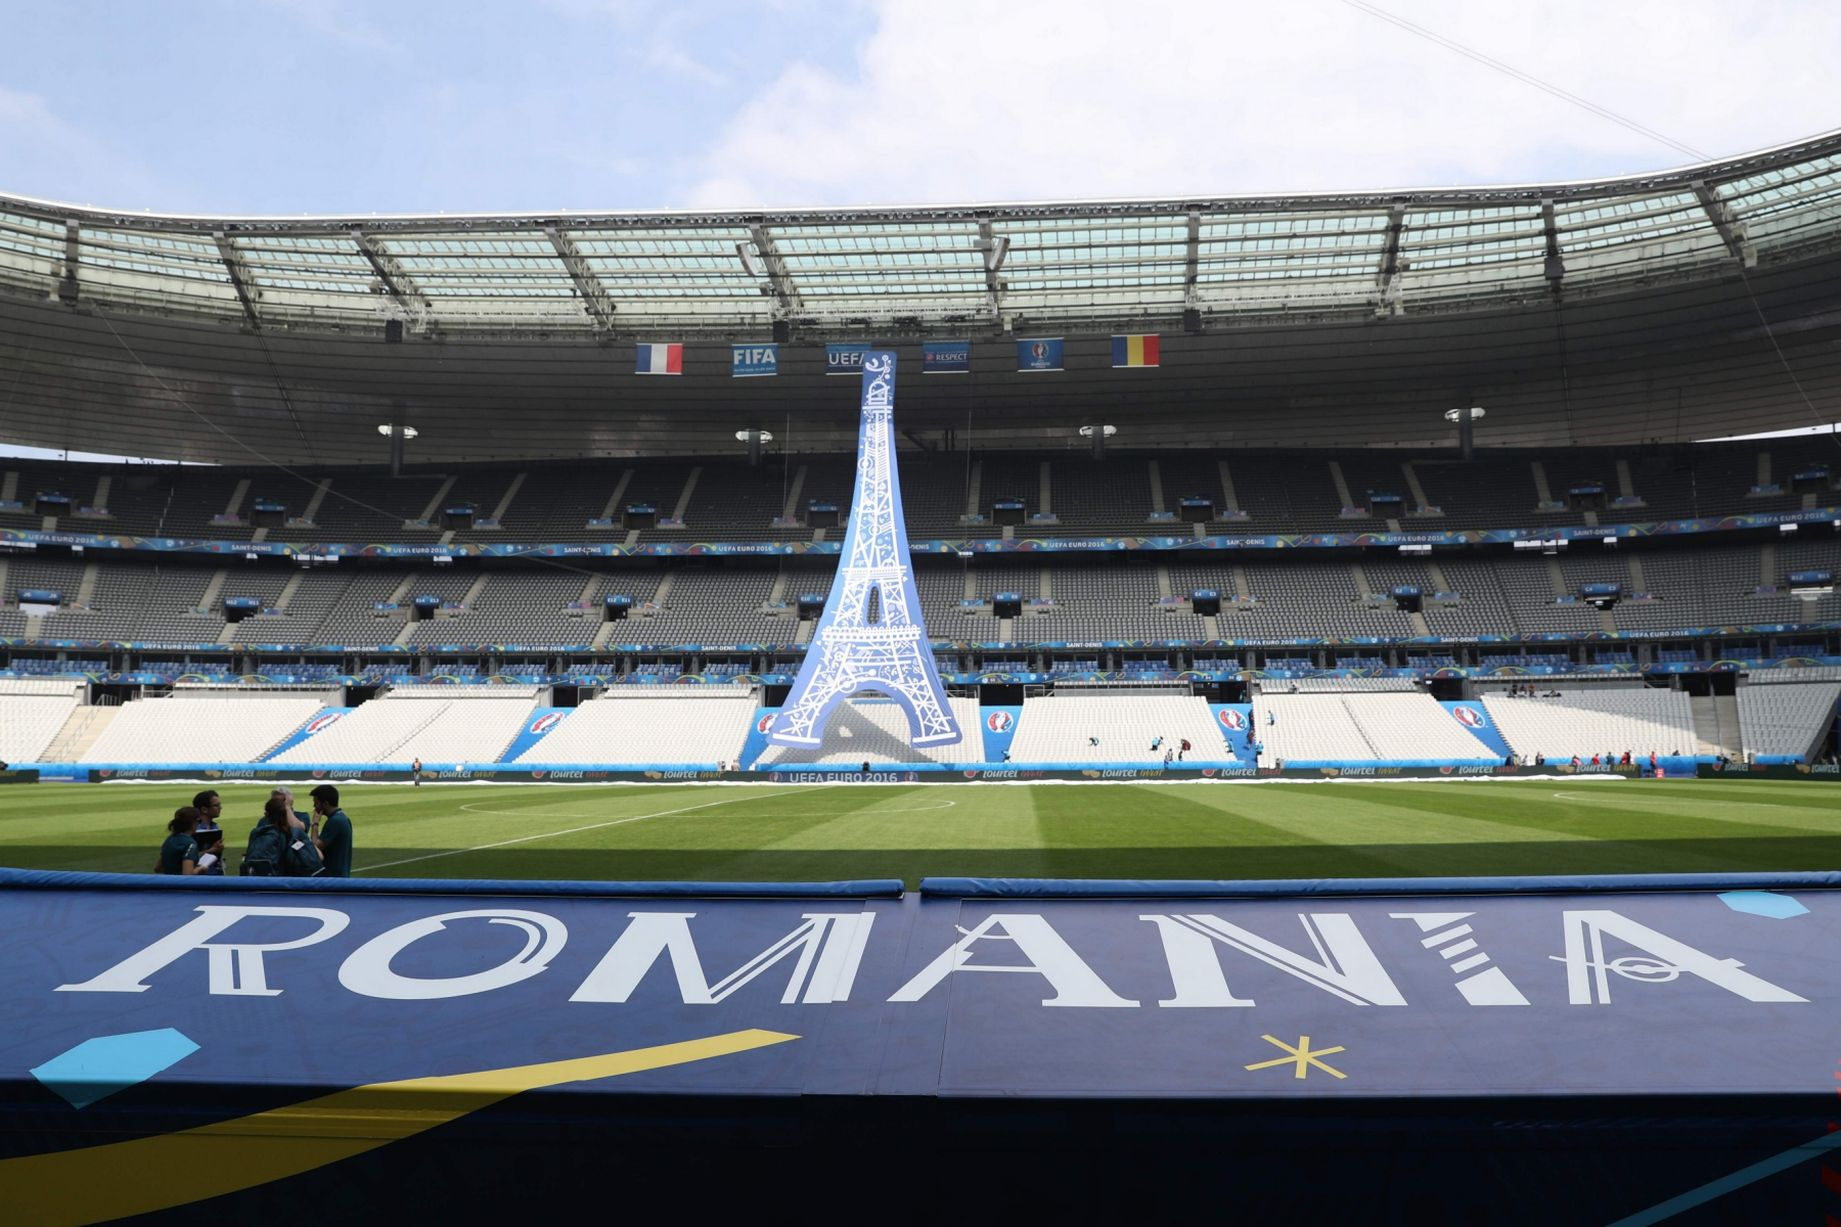 The Stade De France gets ready for the opening ceremony of Euro 2016     The Stade De France gets ready for the opening ceremony of Euro 2016